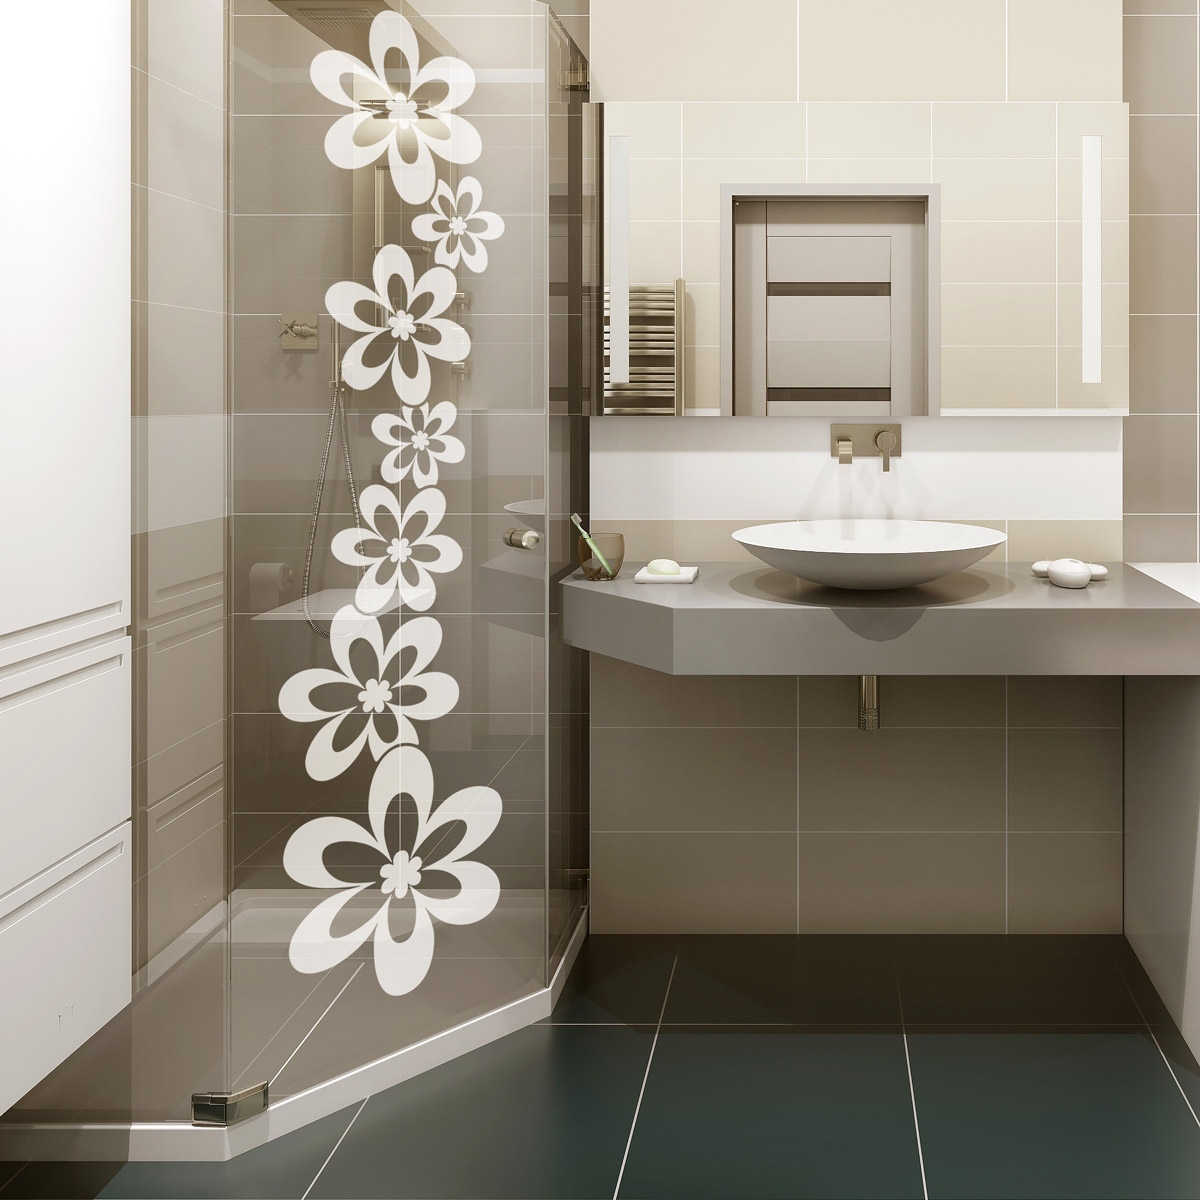 sticker porte de douche alignement de fleurs stickers nature fleurs ambiance sticker. Black Bedroom Furniture Sets. Home Design Ideas